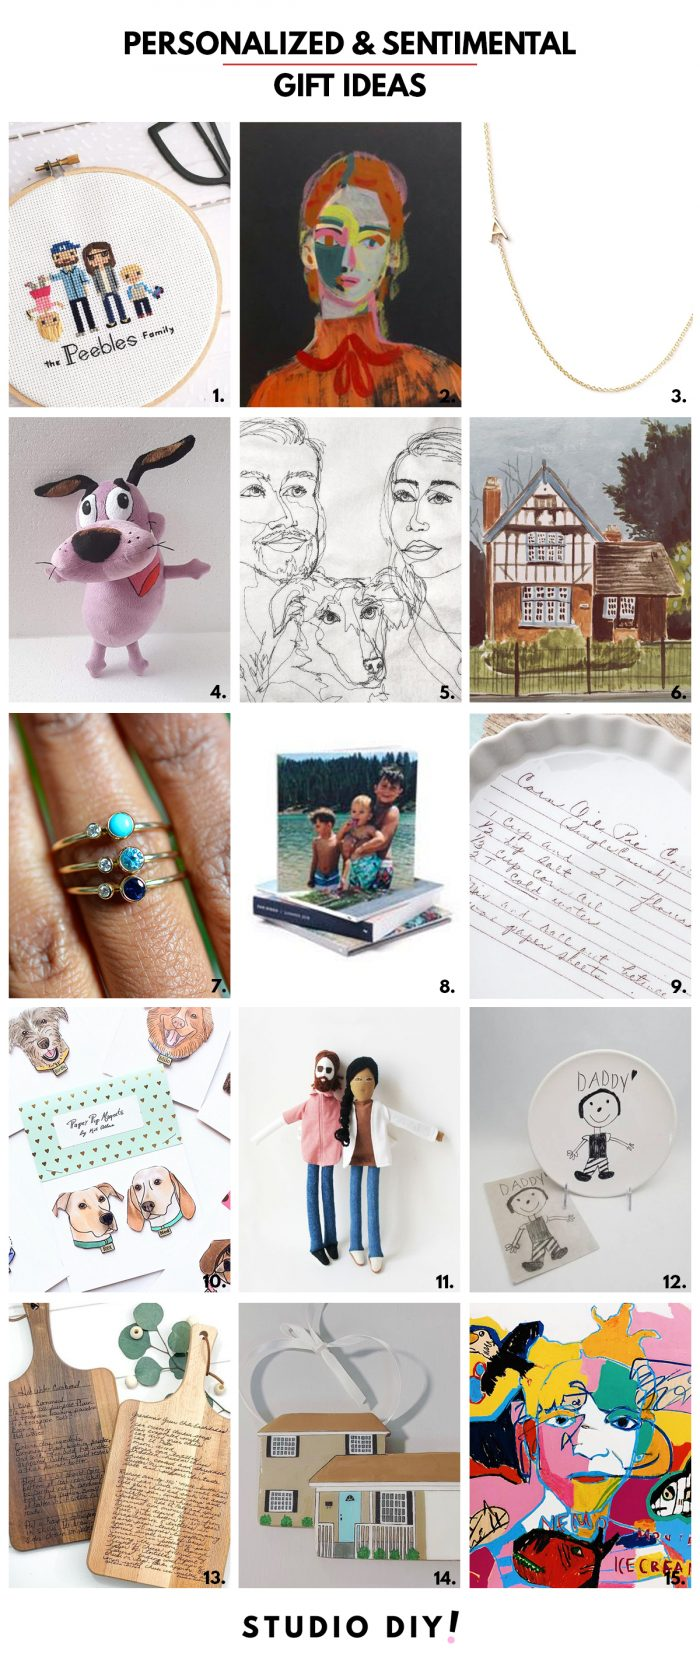 Personalized and Sentimental Gift Ideas from Small Businesses